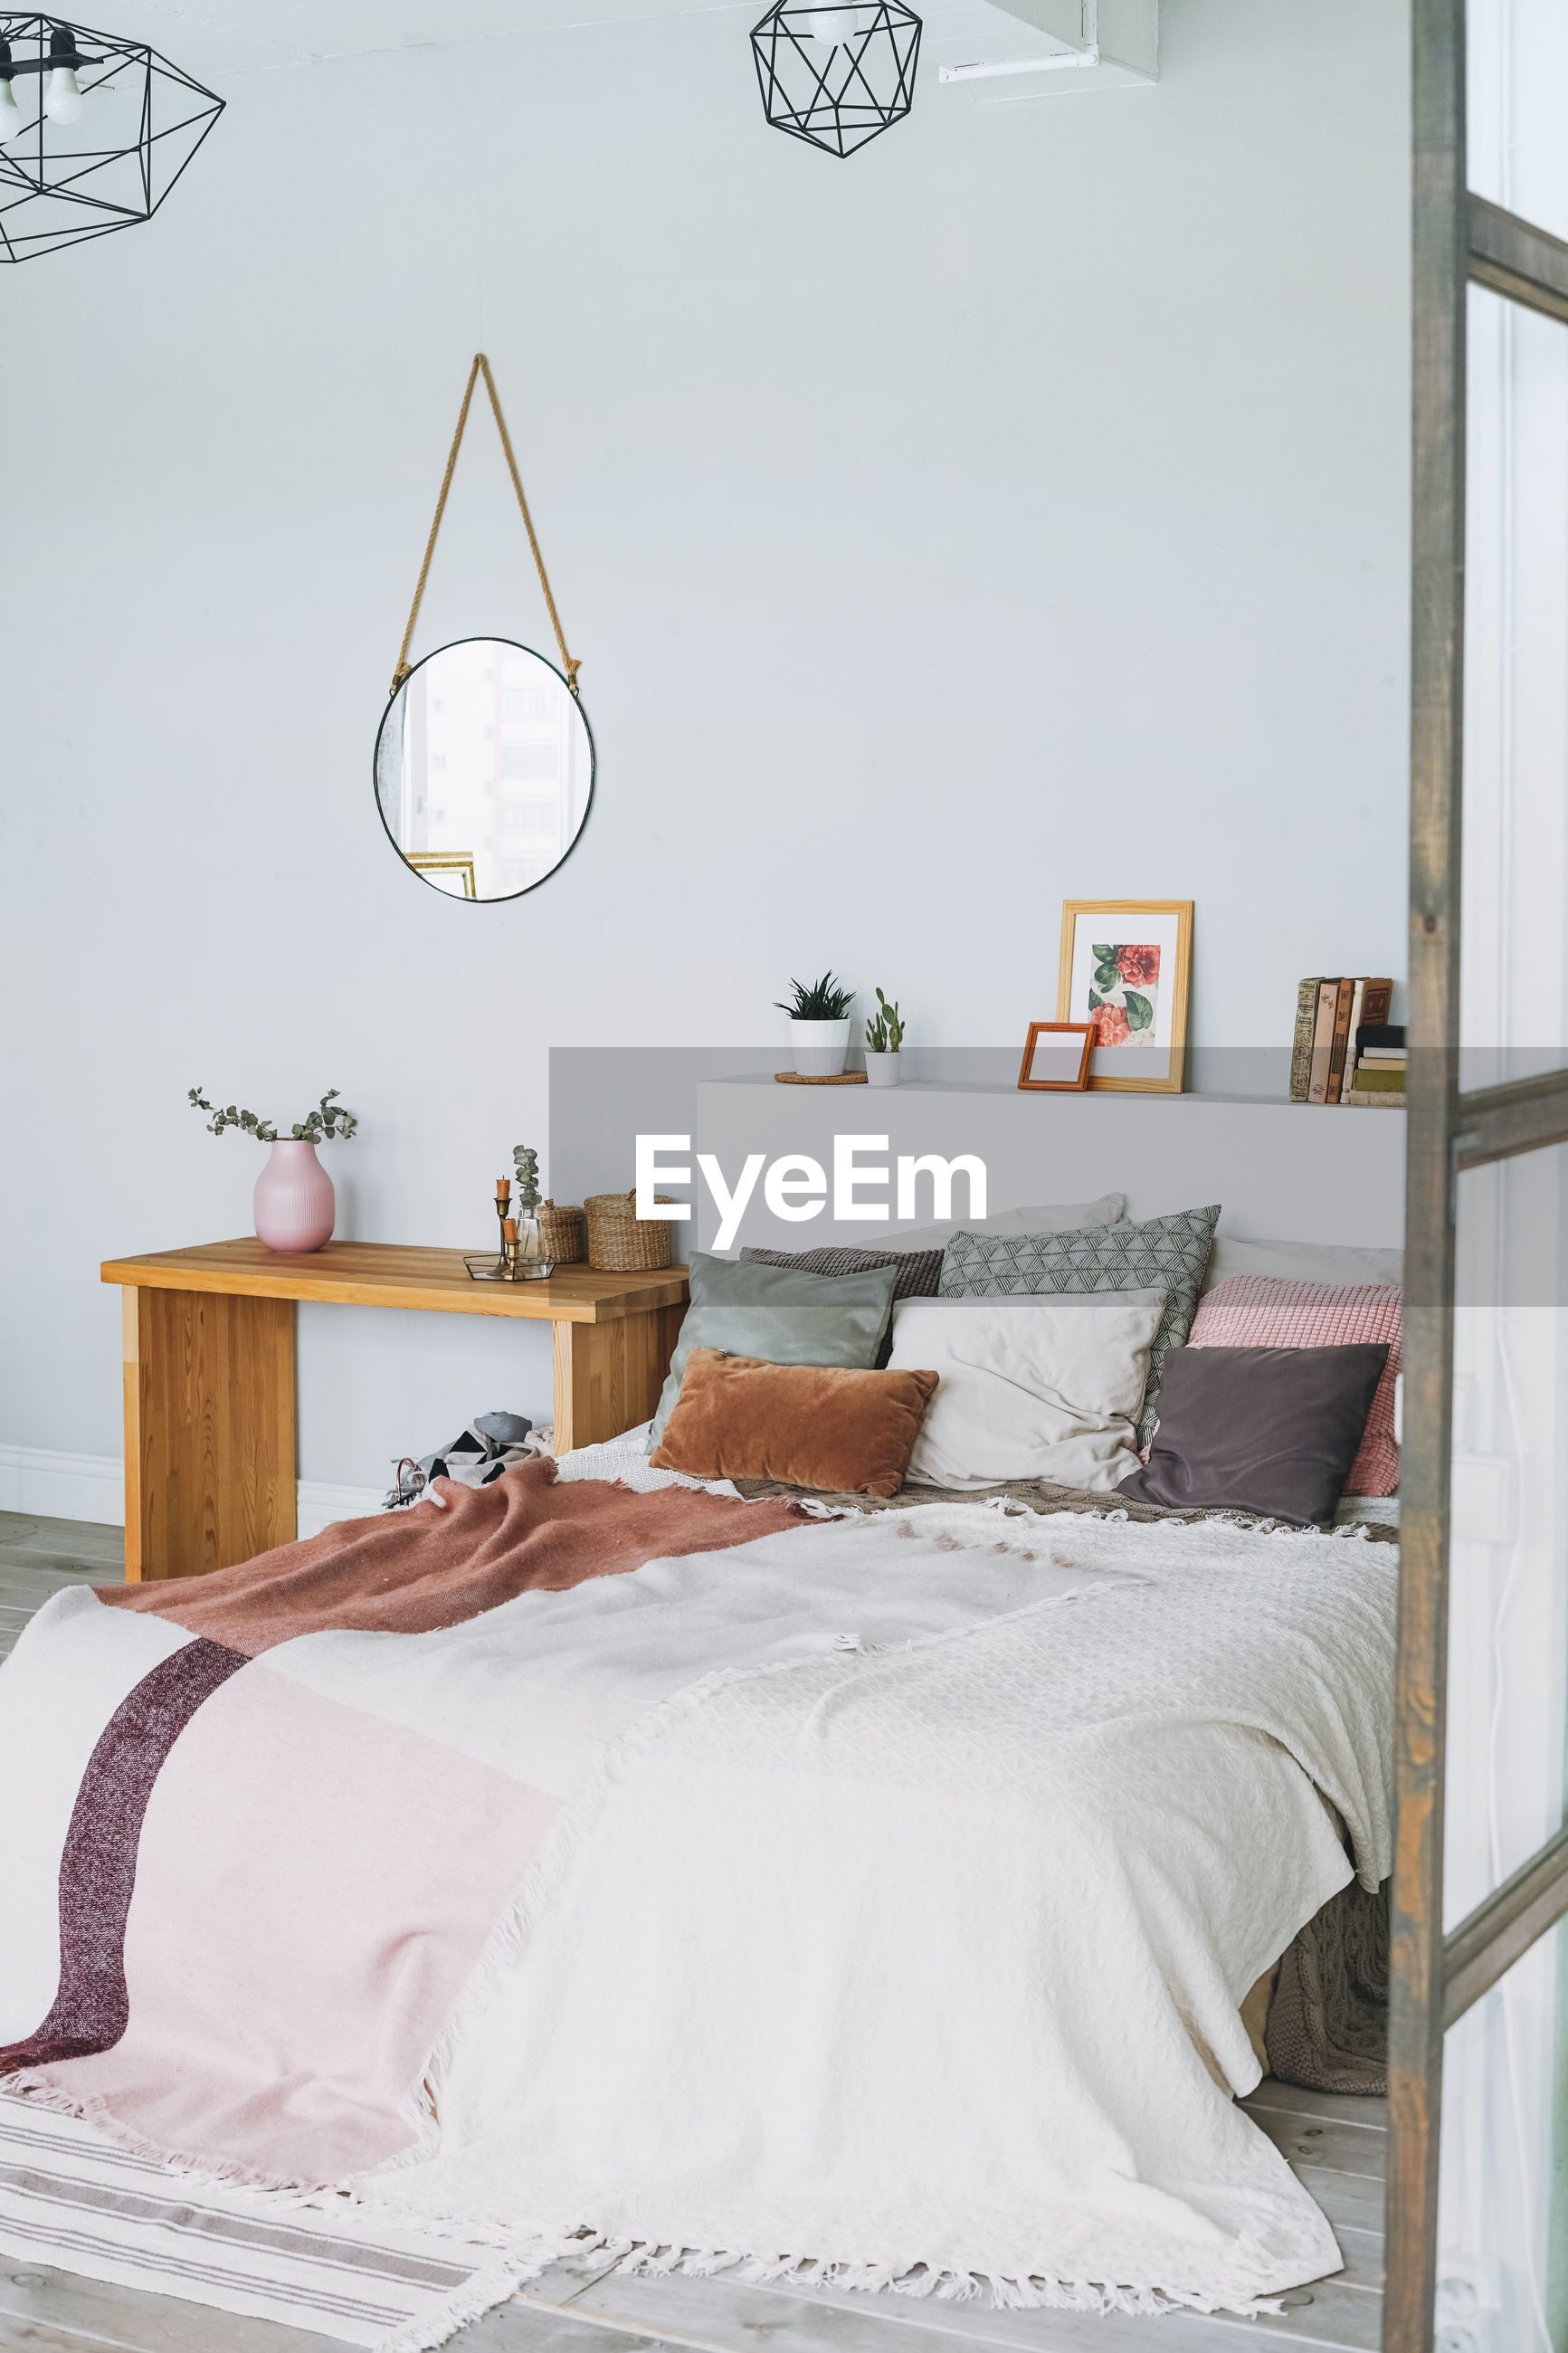 VIEW OF ELECTRIC LAMP ON BED